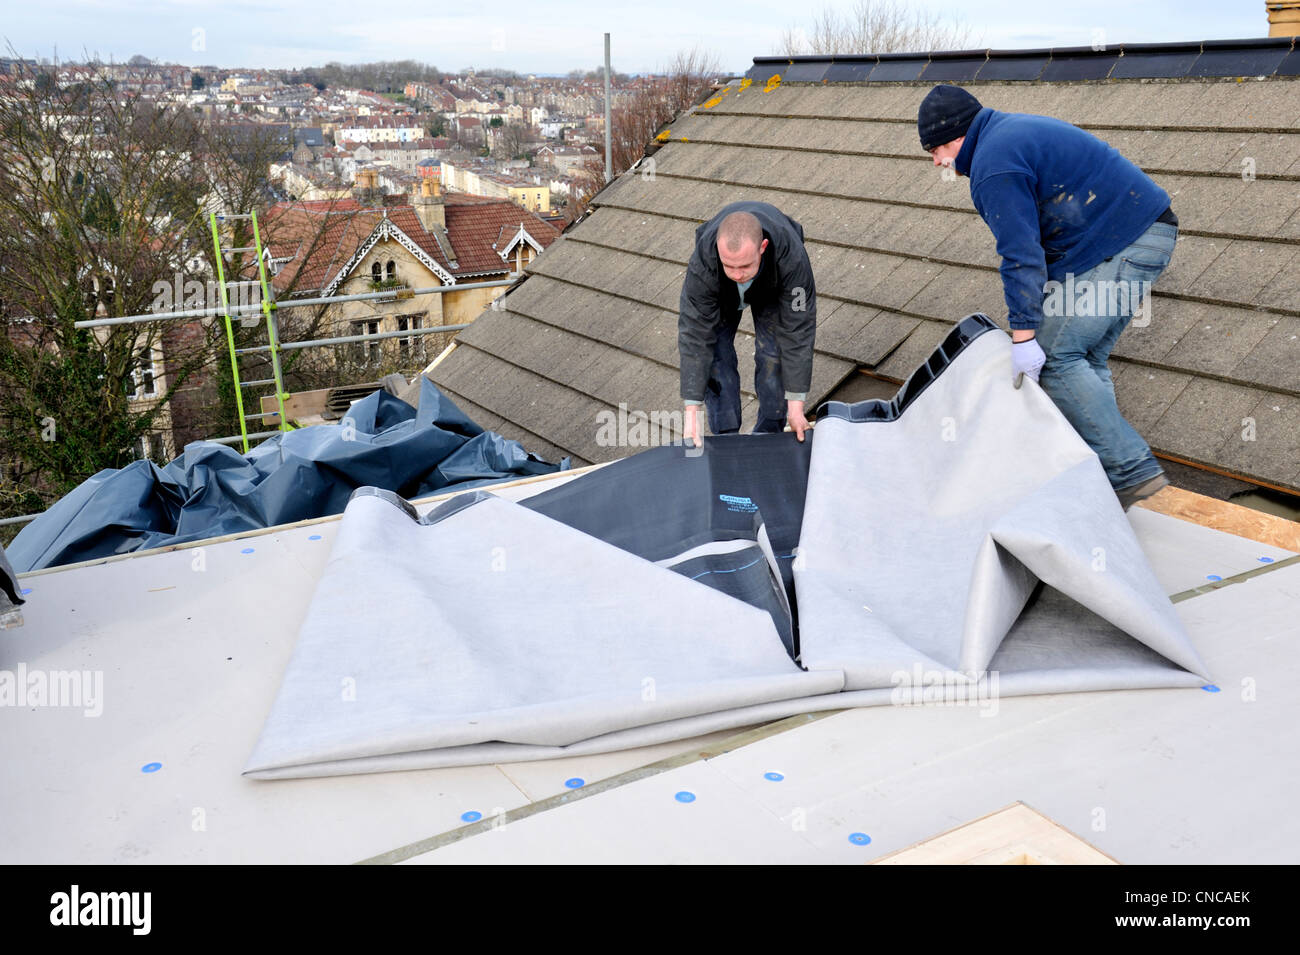 Roofers fitting flat roof with new epdm rubber membrane on house on stock photo royalty free - Advantages using epdm roofing membrane ...